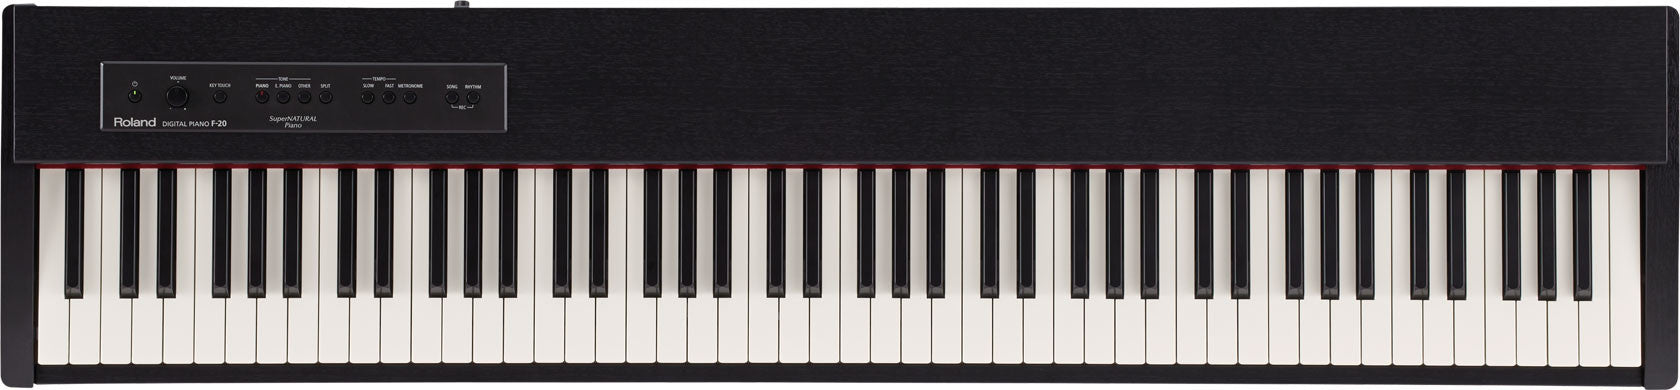 Roland F20 Digital Piano - Contemporary Black Stand not Included